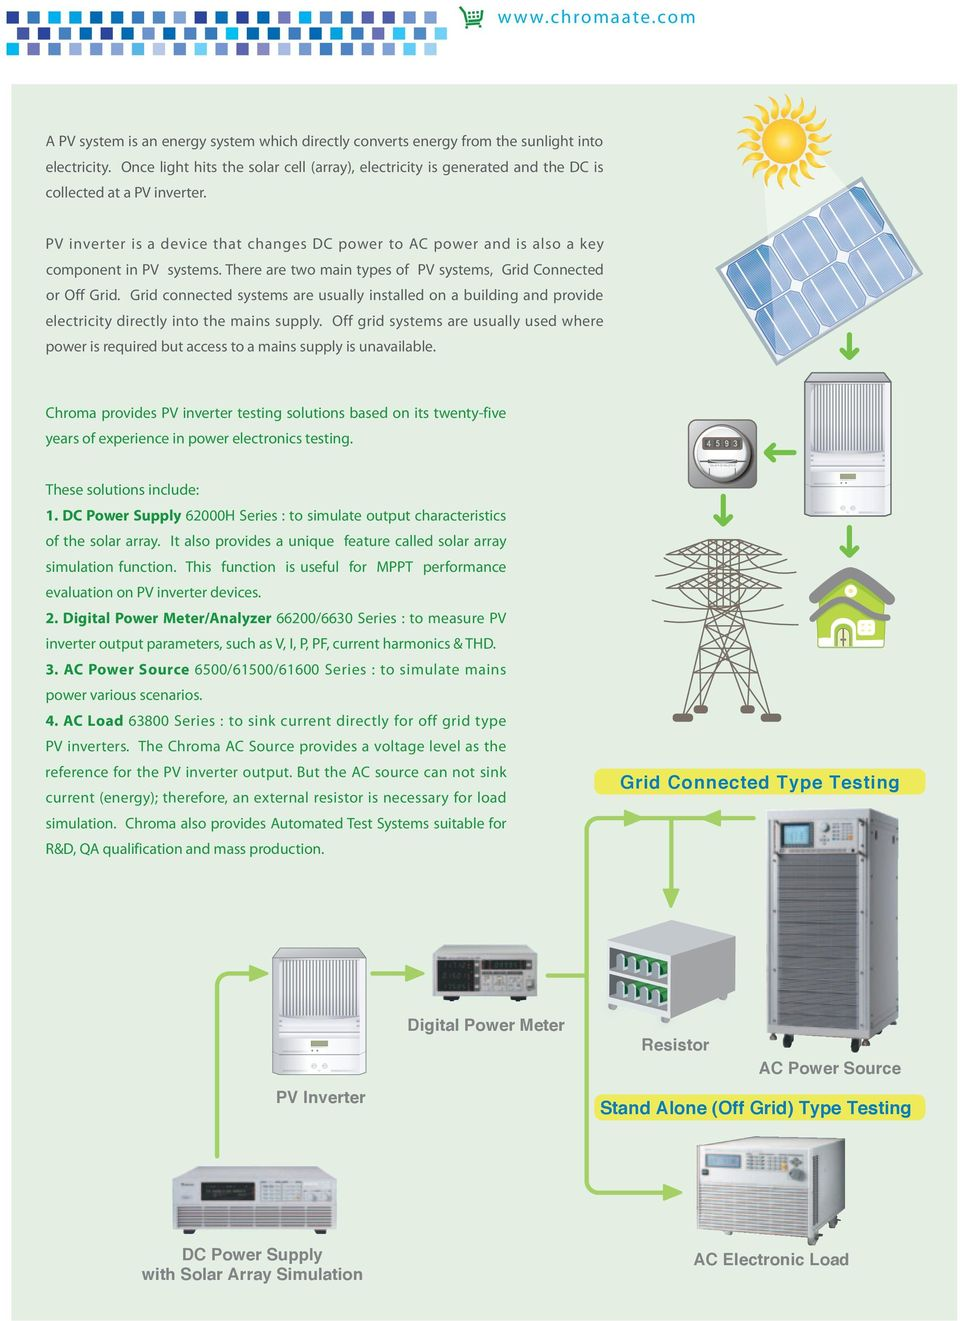 PV inverter is a device that changes DC power to AC power and is also a key component in PV systems. There are two main types of PV systems, Grid Connected or Off Grid.